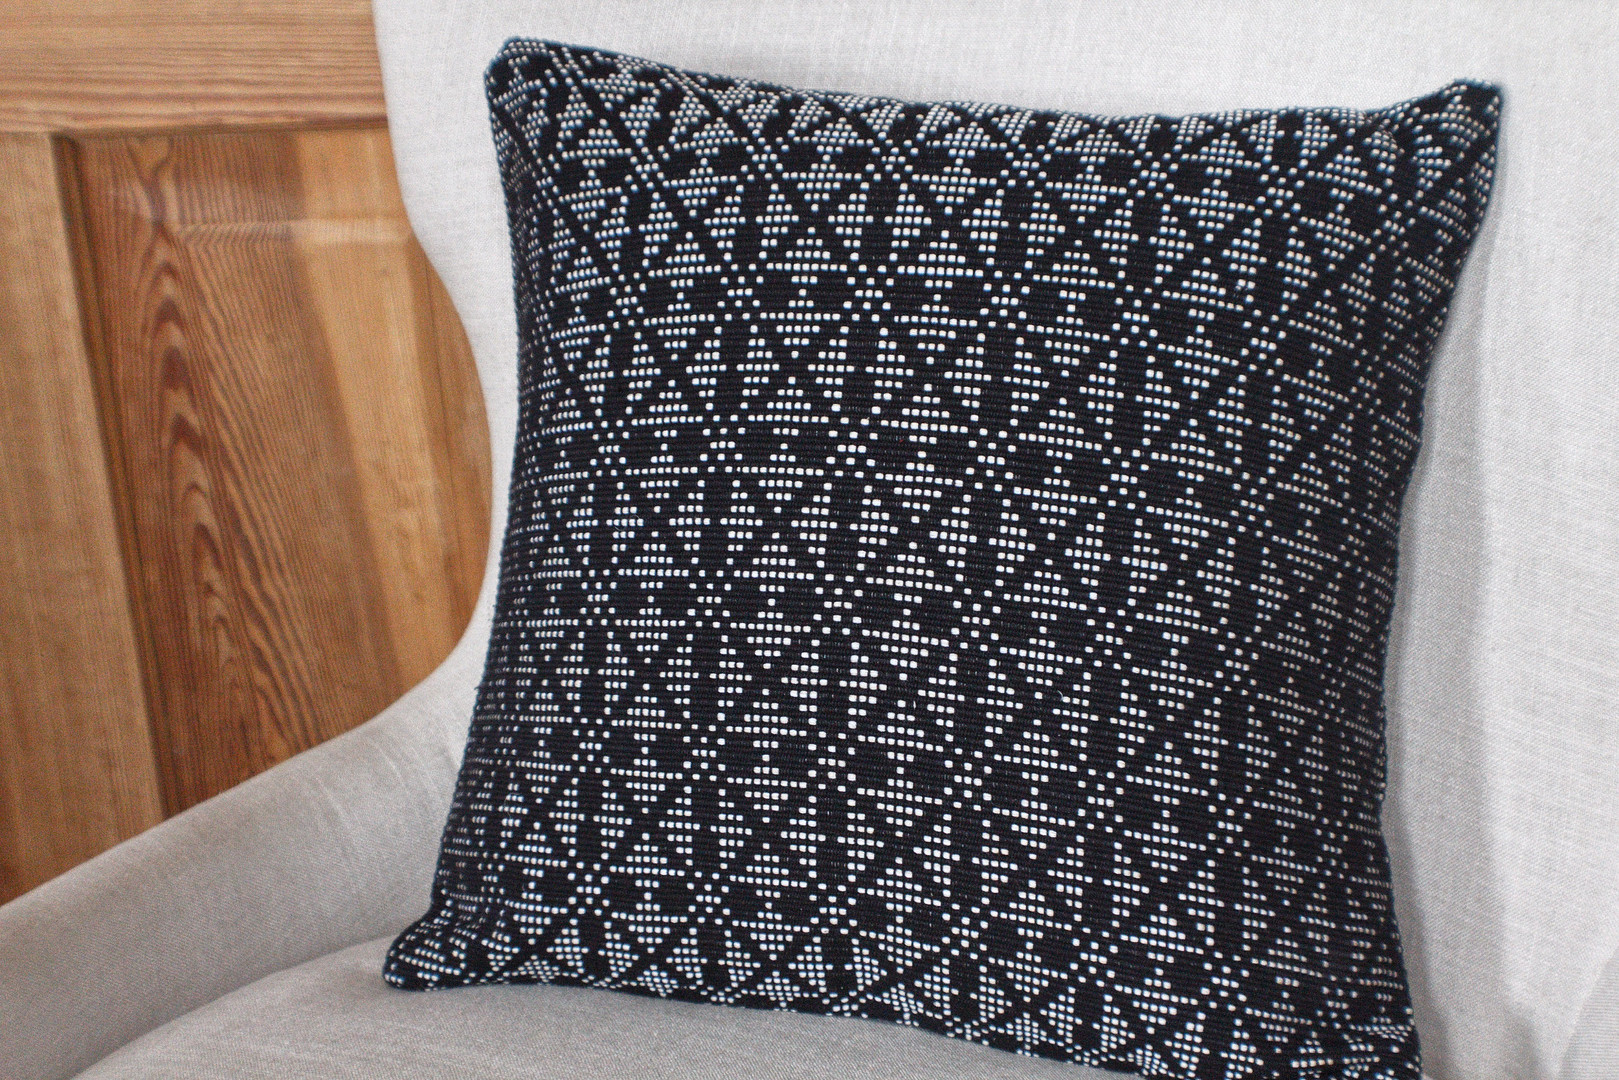 Black and white hand stitched pillow